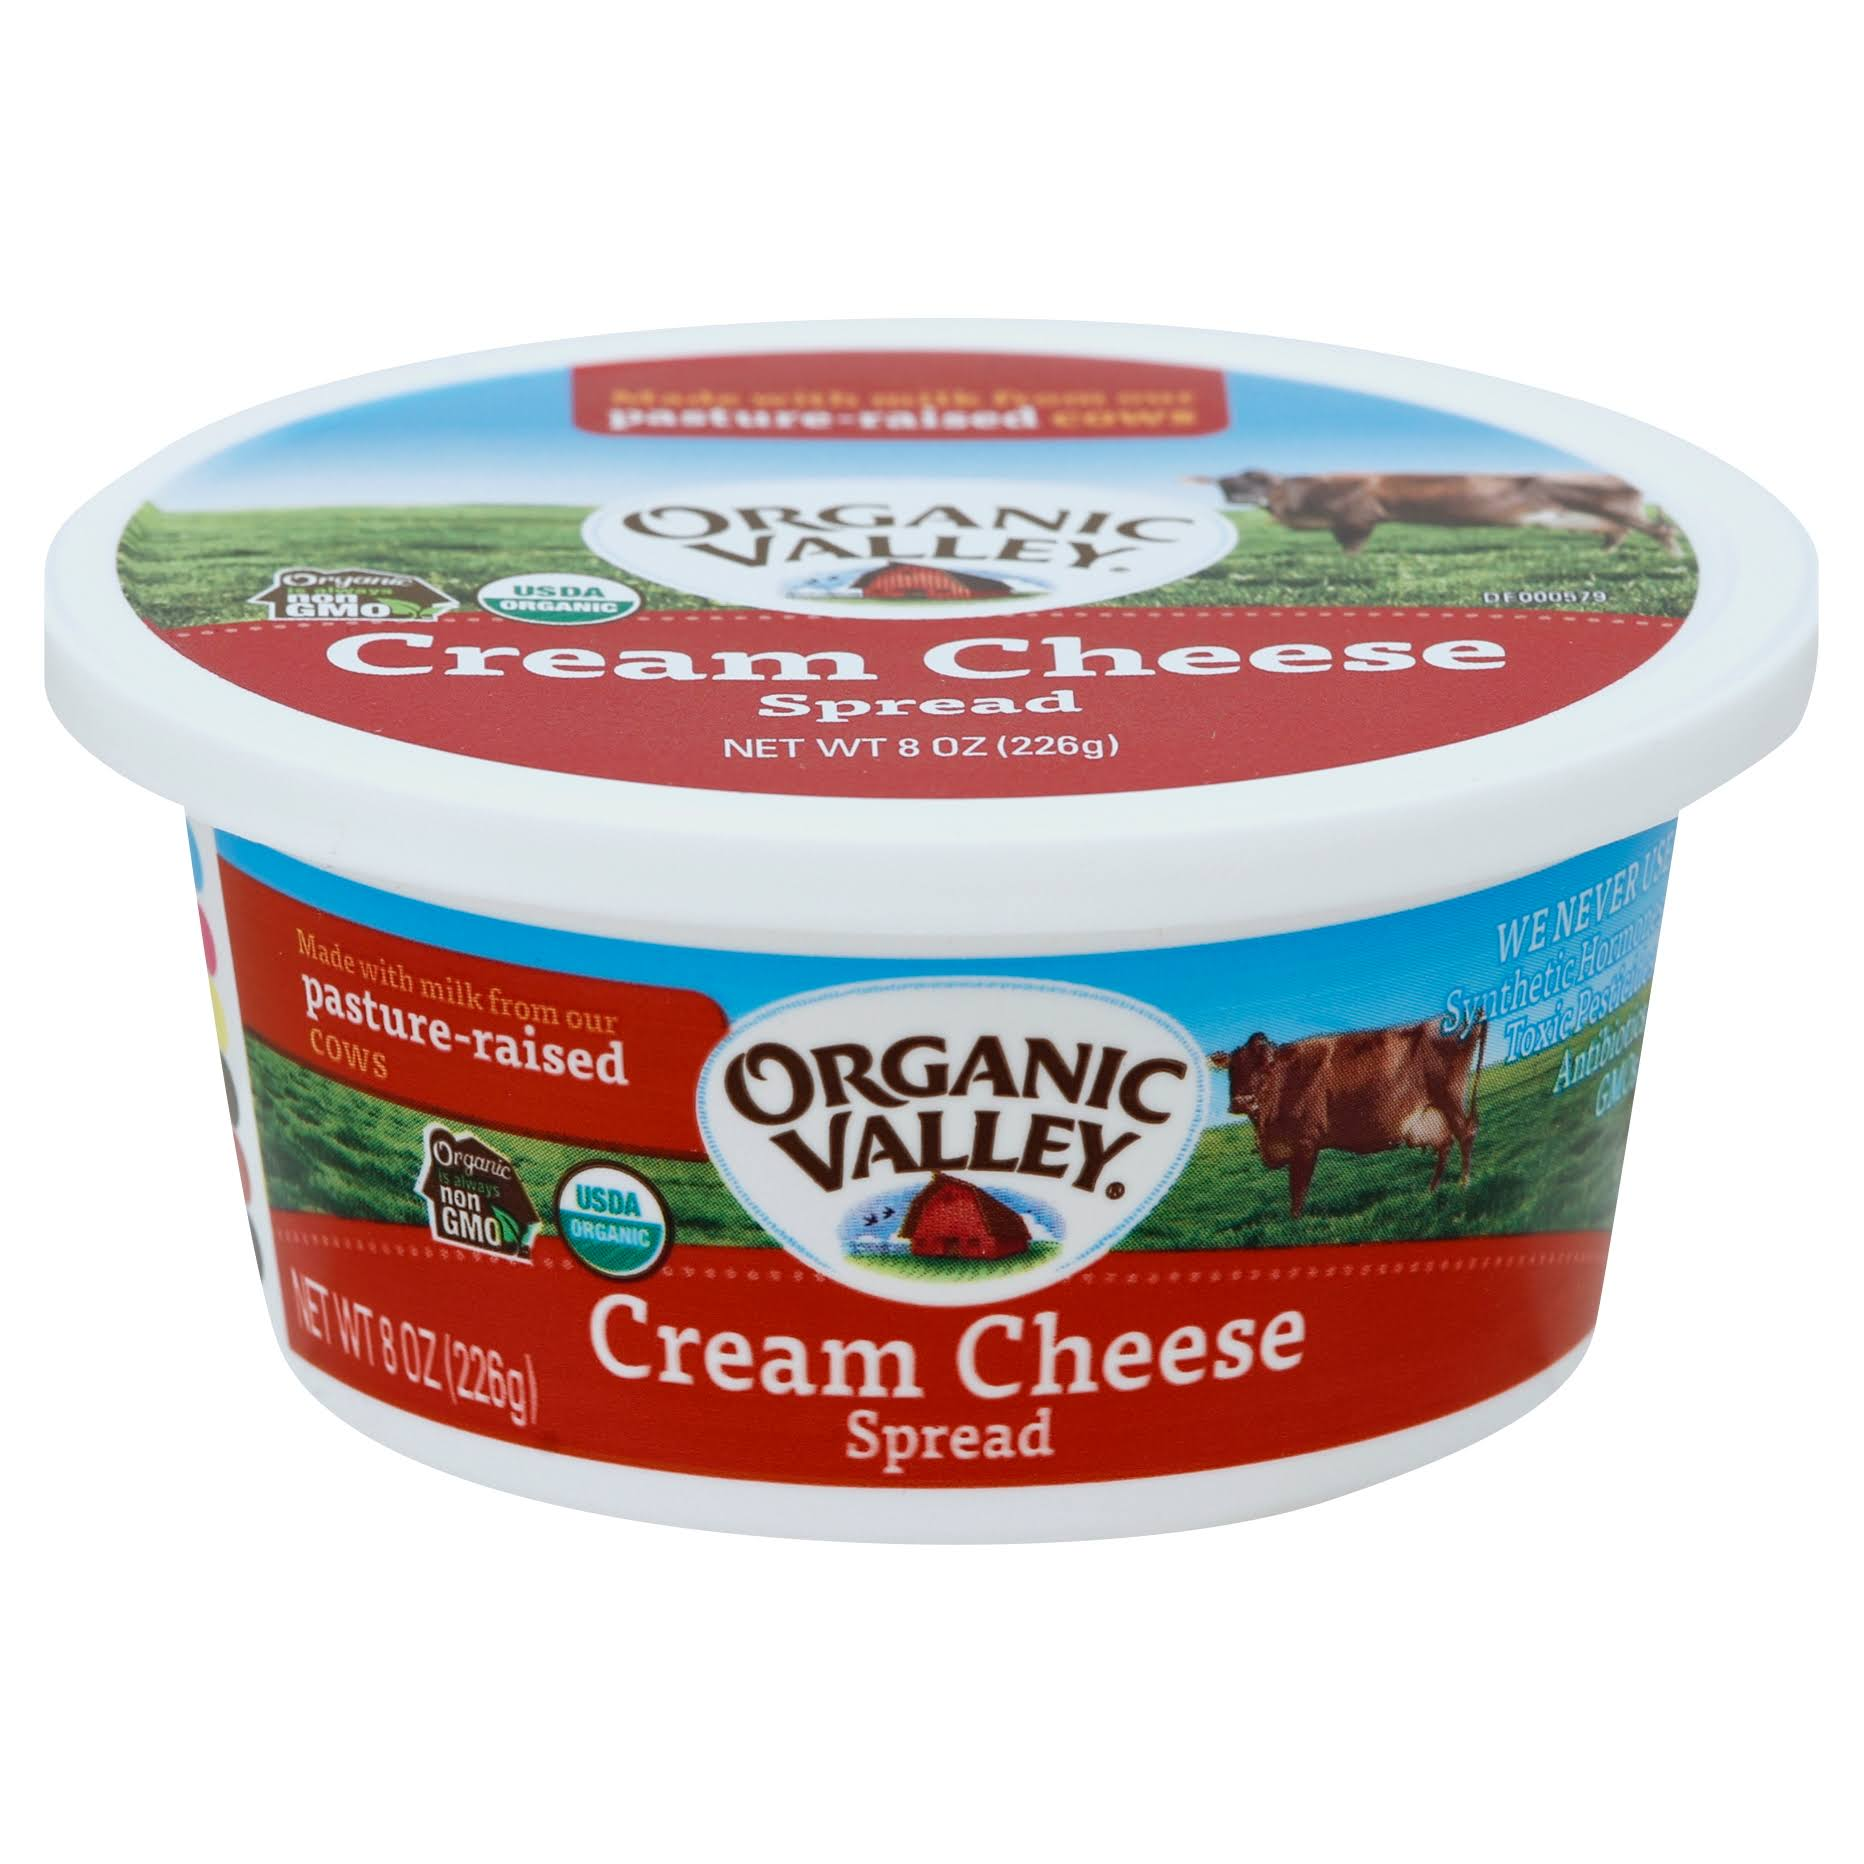 Organic Valley Cream Cheese Spread - 8 oz